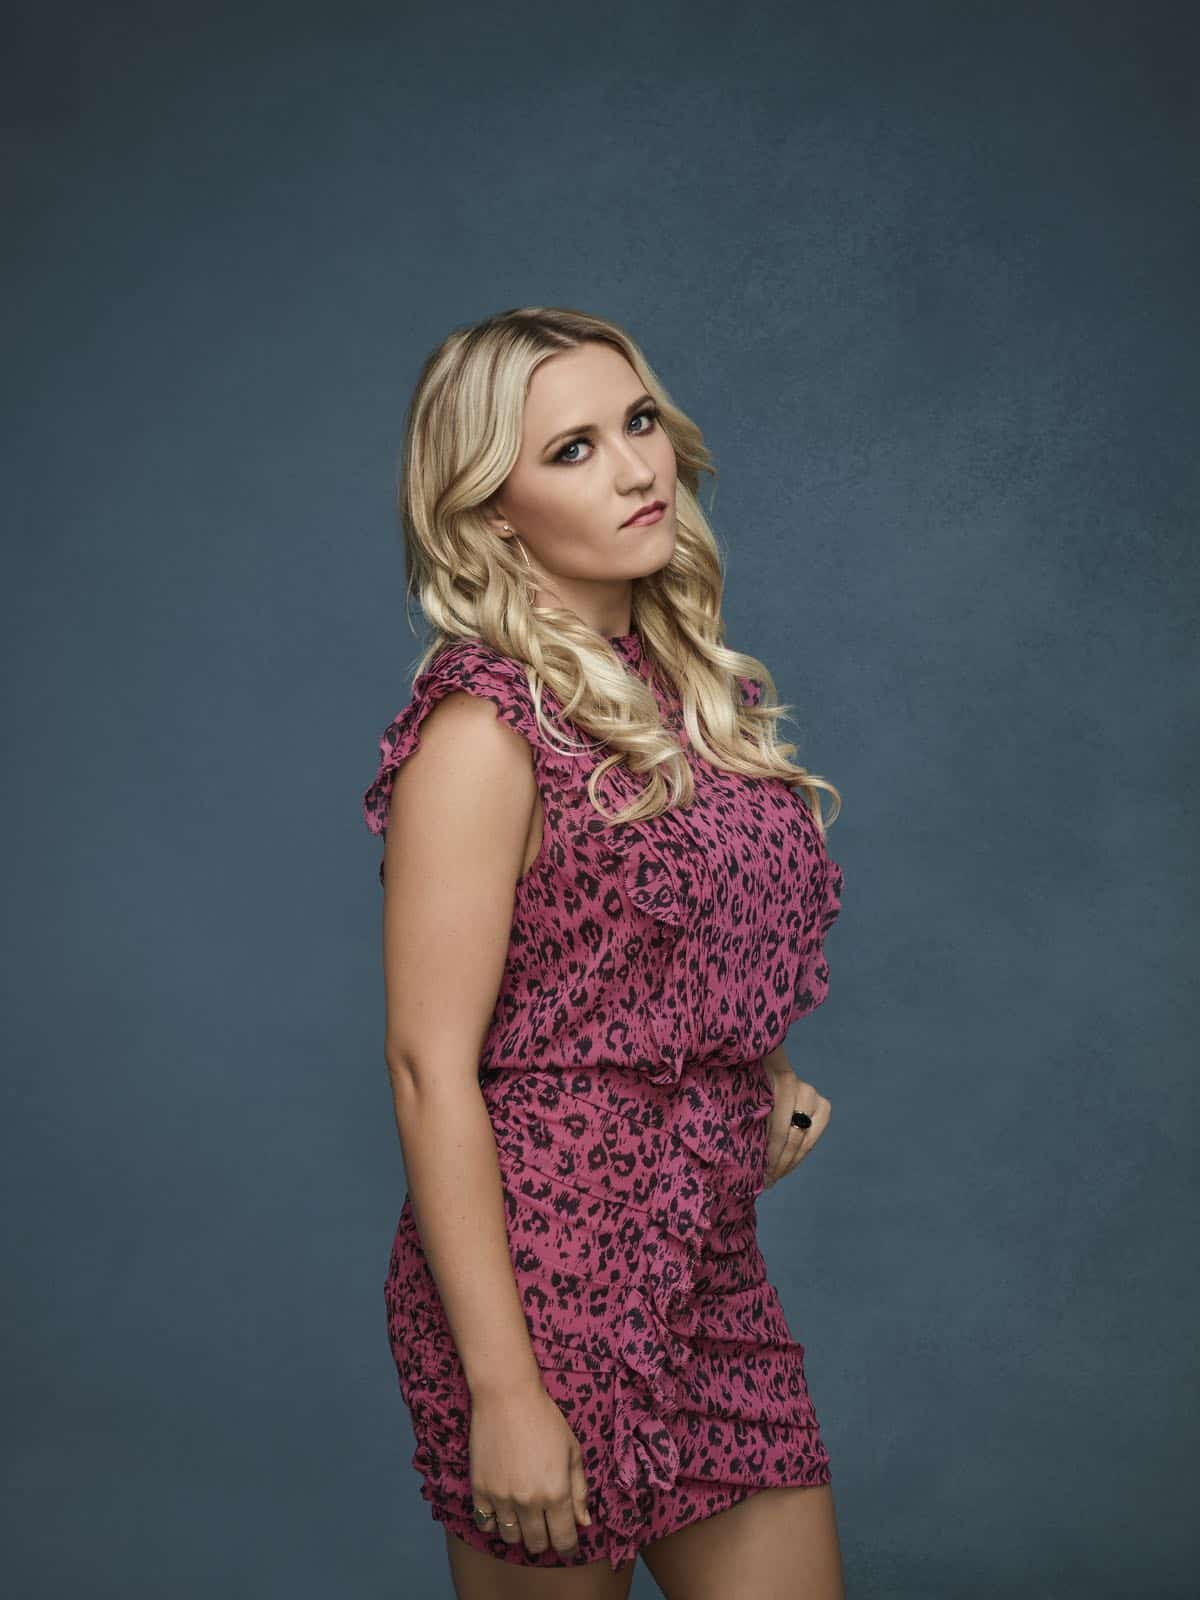 ALMOST FAMILY: Emily Osment as Roxy Doyle in Season 1 of ALMOST FAMILY premiering Wednesday, October 2 (9:00-10:00pm PM ET/PT) on FOX. ©2019 Fox Broadcasting Co. All Rights Reserved. CR: Elisabeth Caren/FOX.